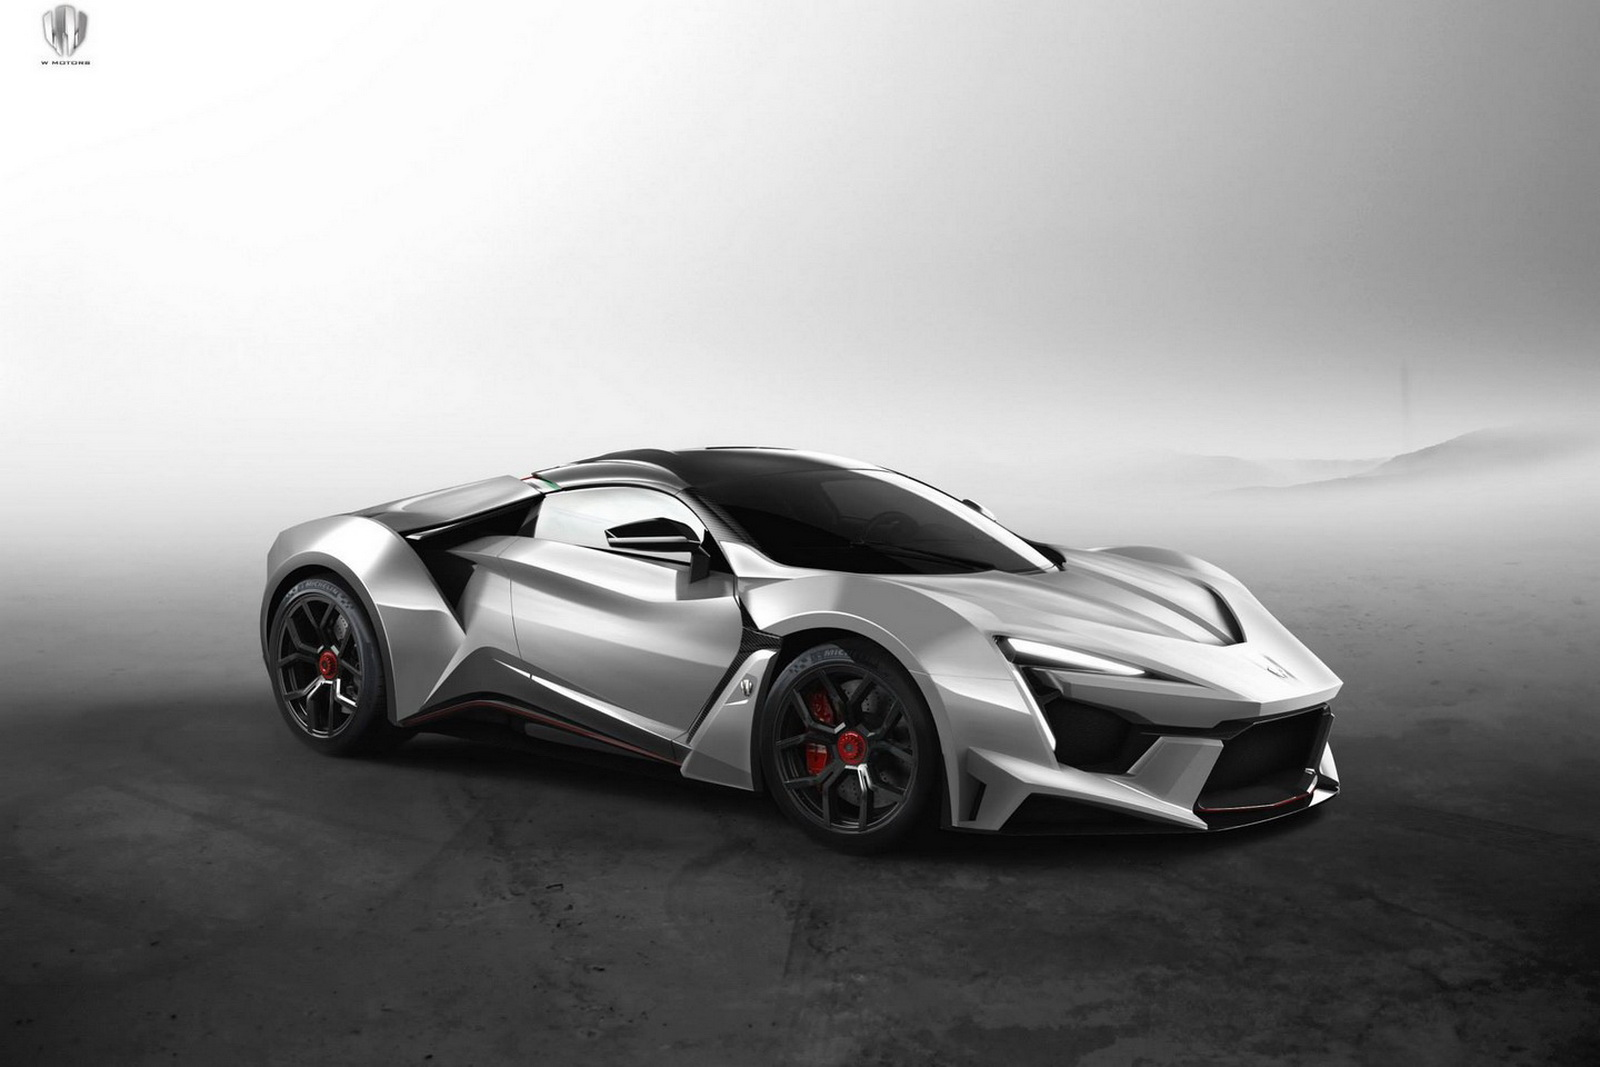 W Motors La Fenyr Supersport Apres La Lykan Hypersport on cool fast and furious cars